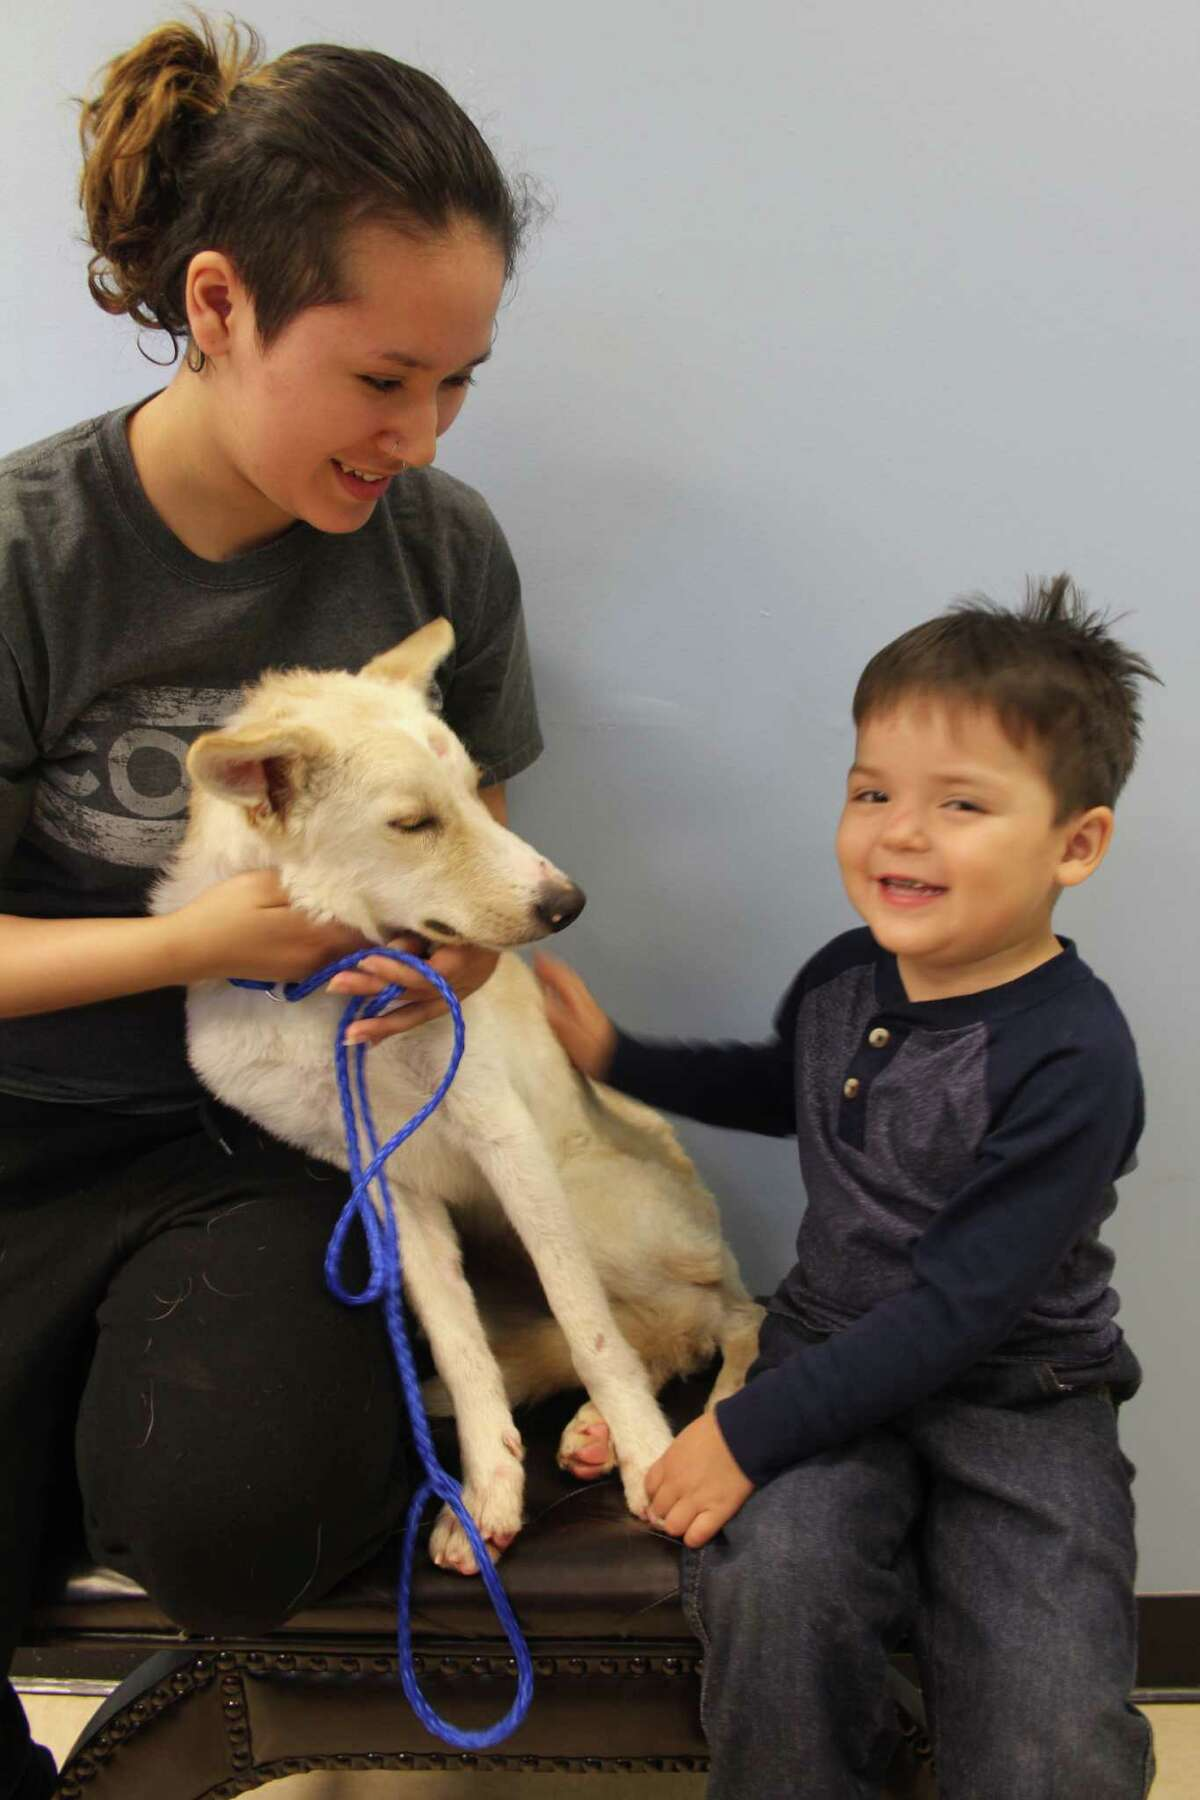 Savannah Morales of Alvin and her son, Avann Colin, 3, spend time with a dog they are adopting from Fort Bend County Animal Services. The dog is on the center's PUSH list, which recently included 105 dogs and 27 cats.